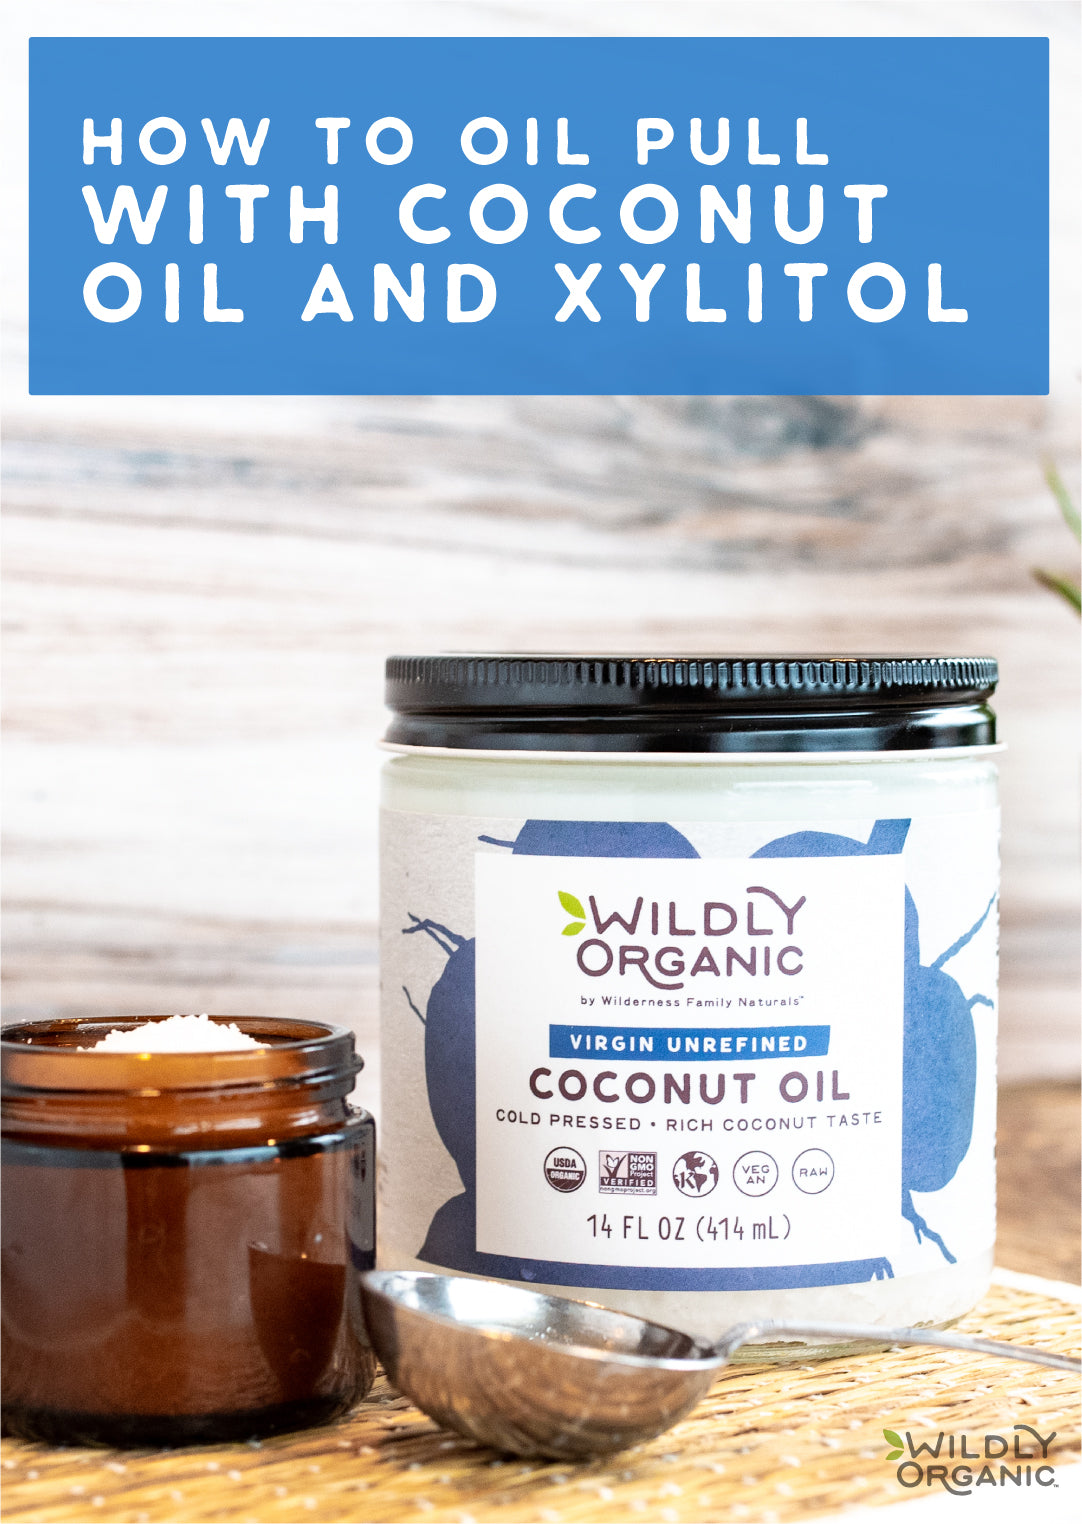 Jar of Wildly Organic Cold Pressed Coconut oil with metal scoop on wooden counter top